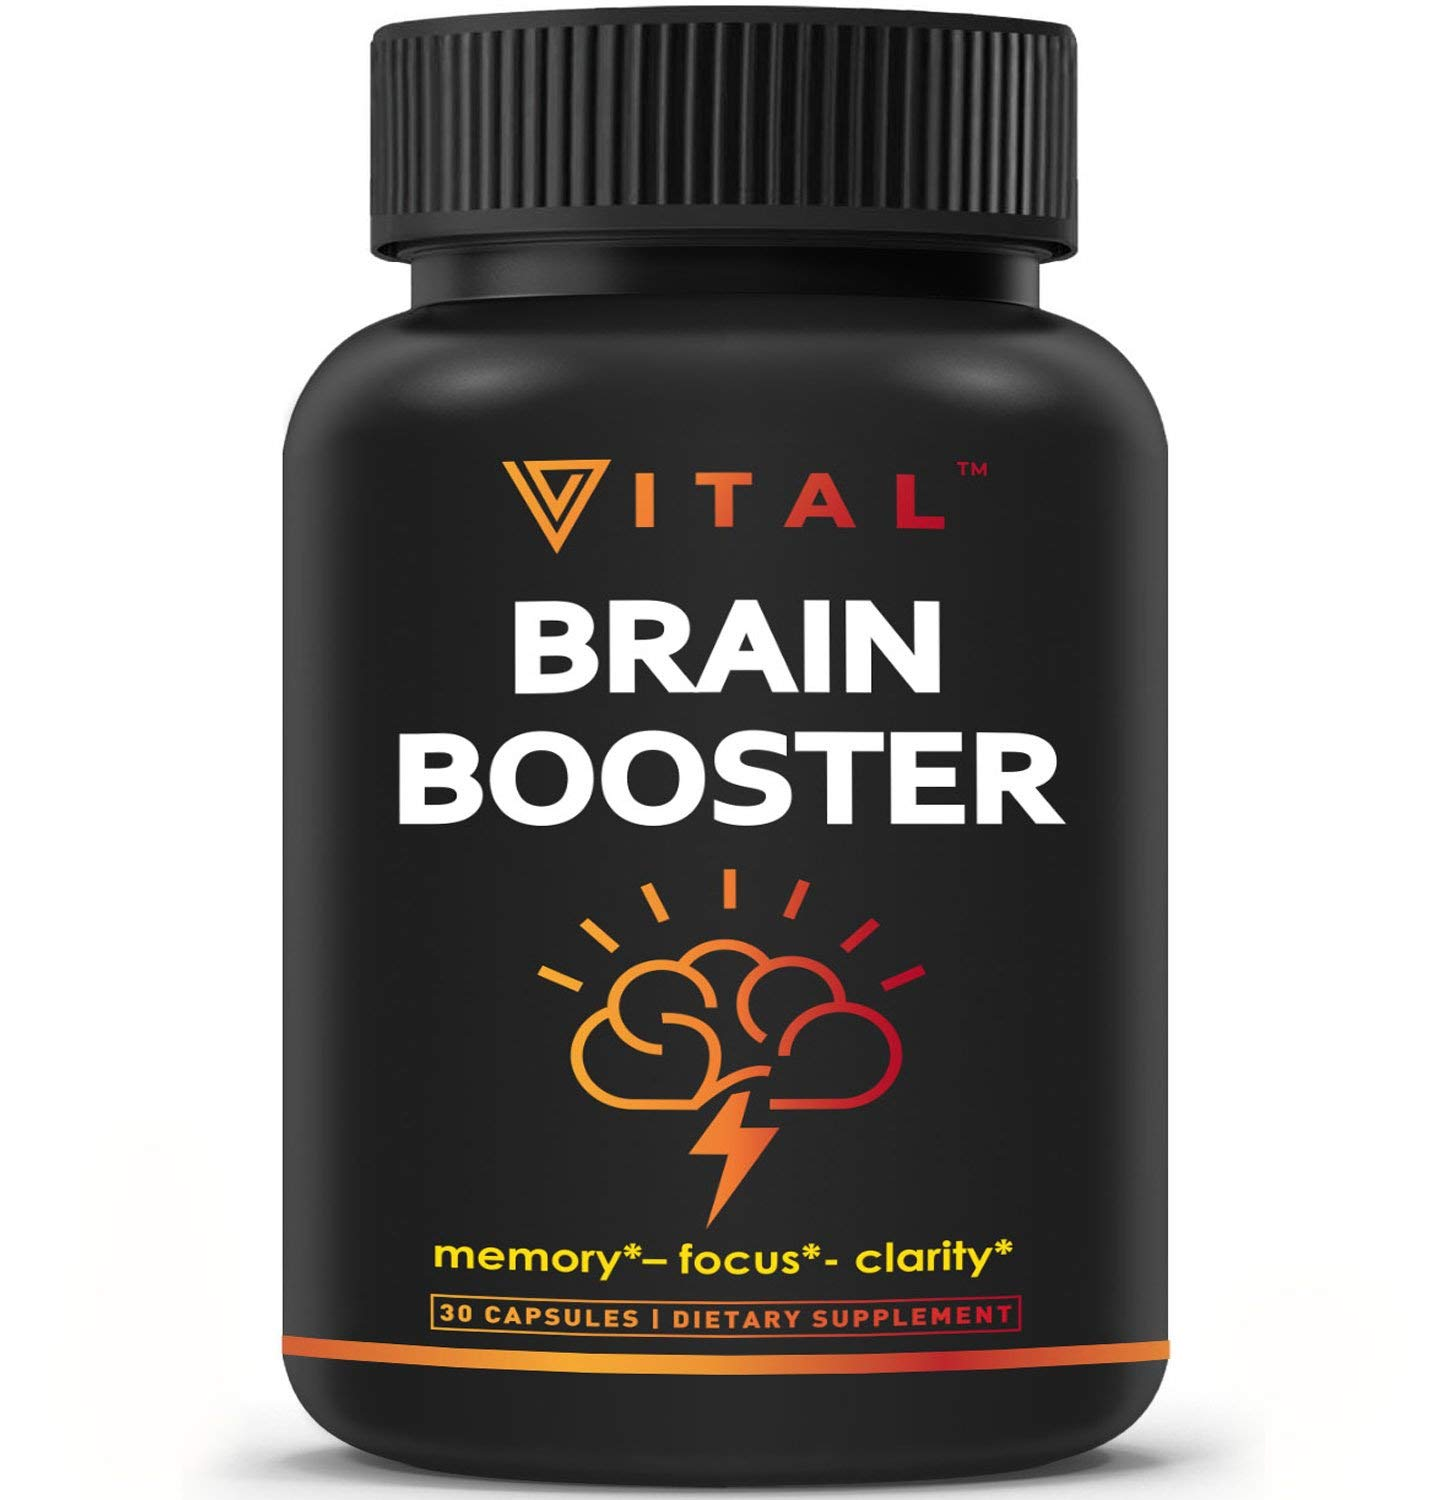 Brain Supplement Nootropics Booster - Enhance Focus, Boost Concentration, Improve Memory & Clarity For Men & Women, Ginkgo Biloba, DMAE, Mind Enhancement, IQ Neuro Energy, Vitamin B12, Bacopa Monnieri by Vital Vitamins